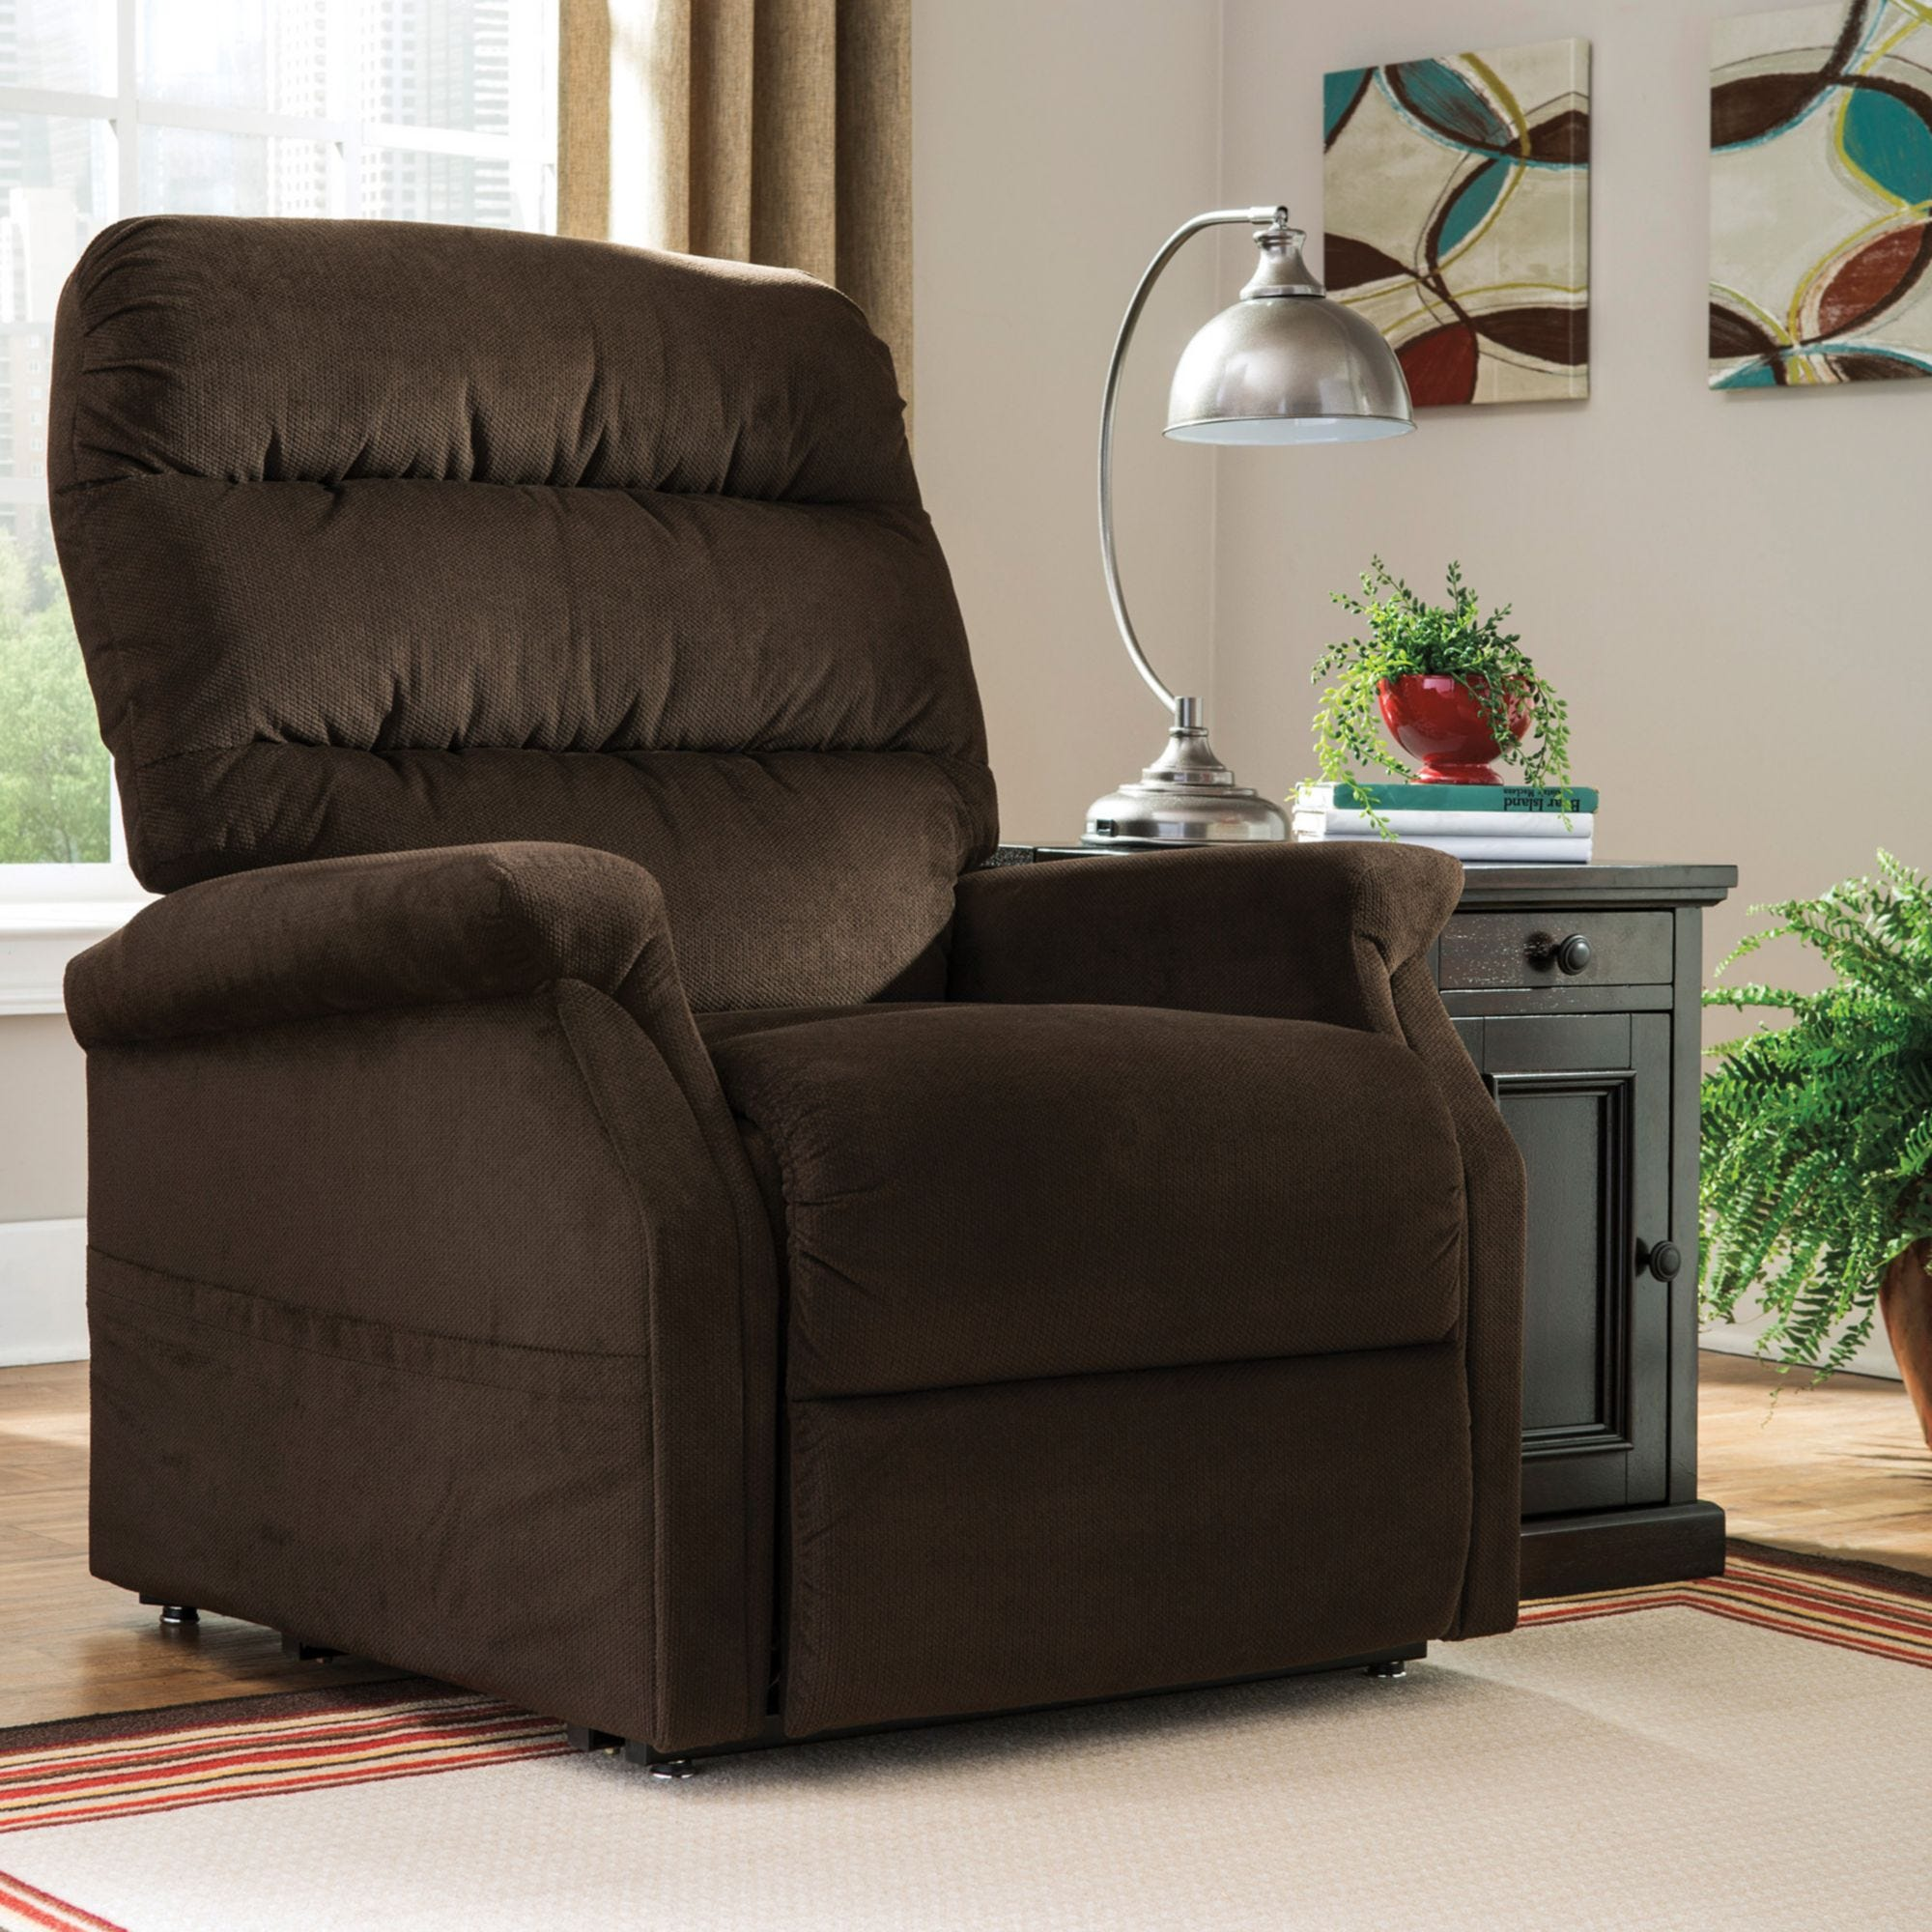 lift roll recliners chr lr recliner brown product to image over chairs java ingram zoom chair